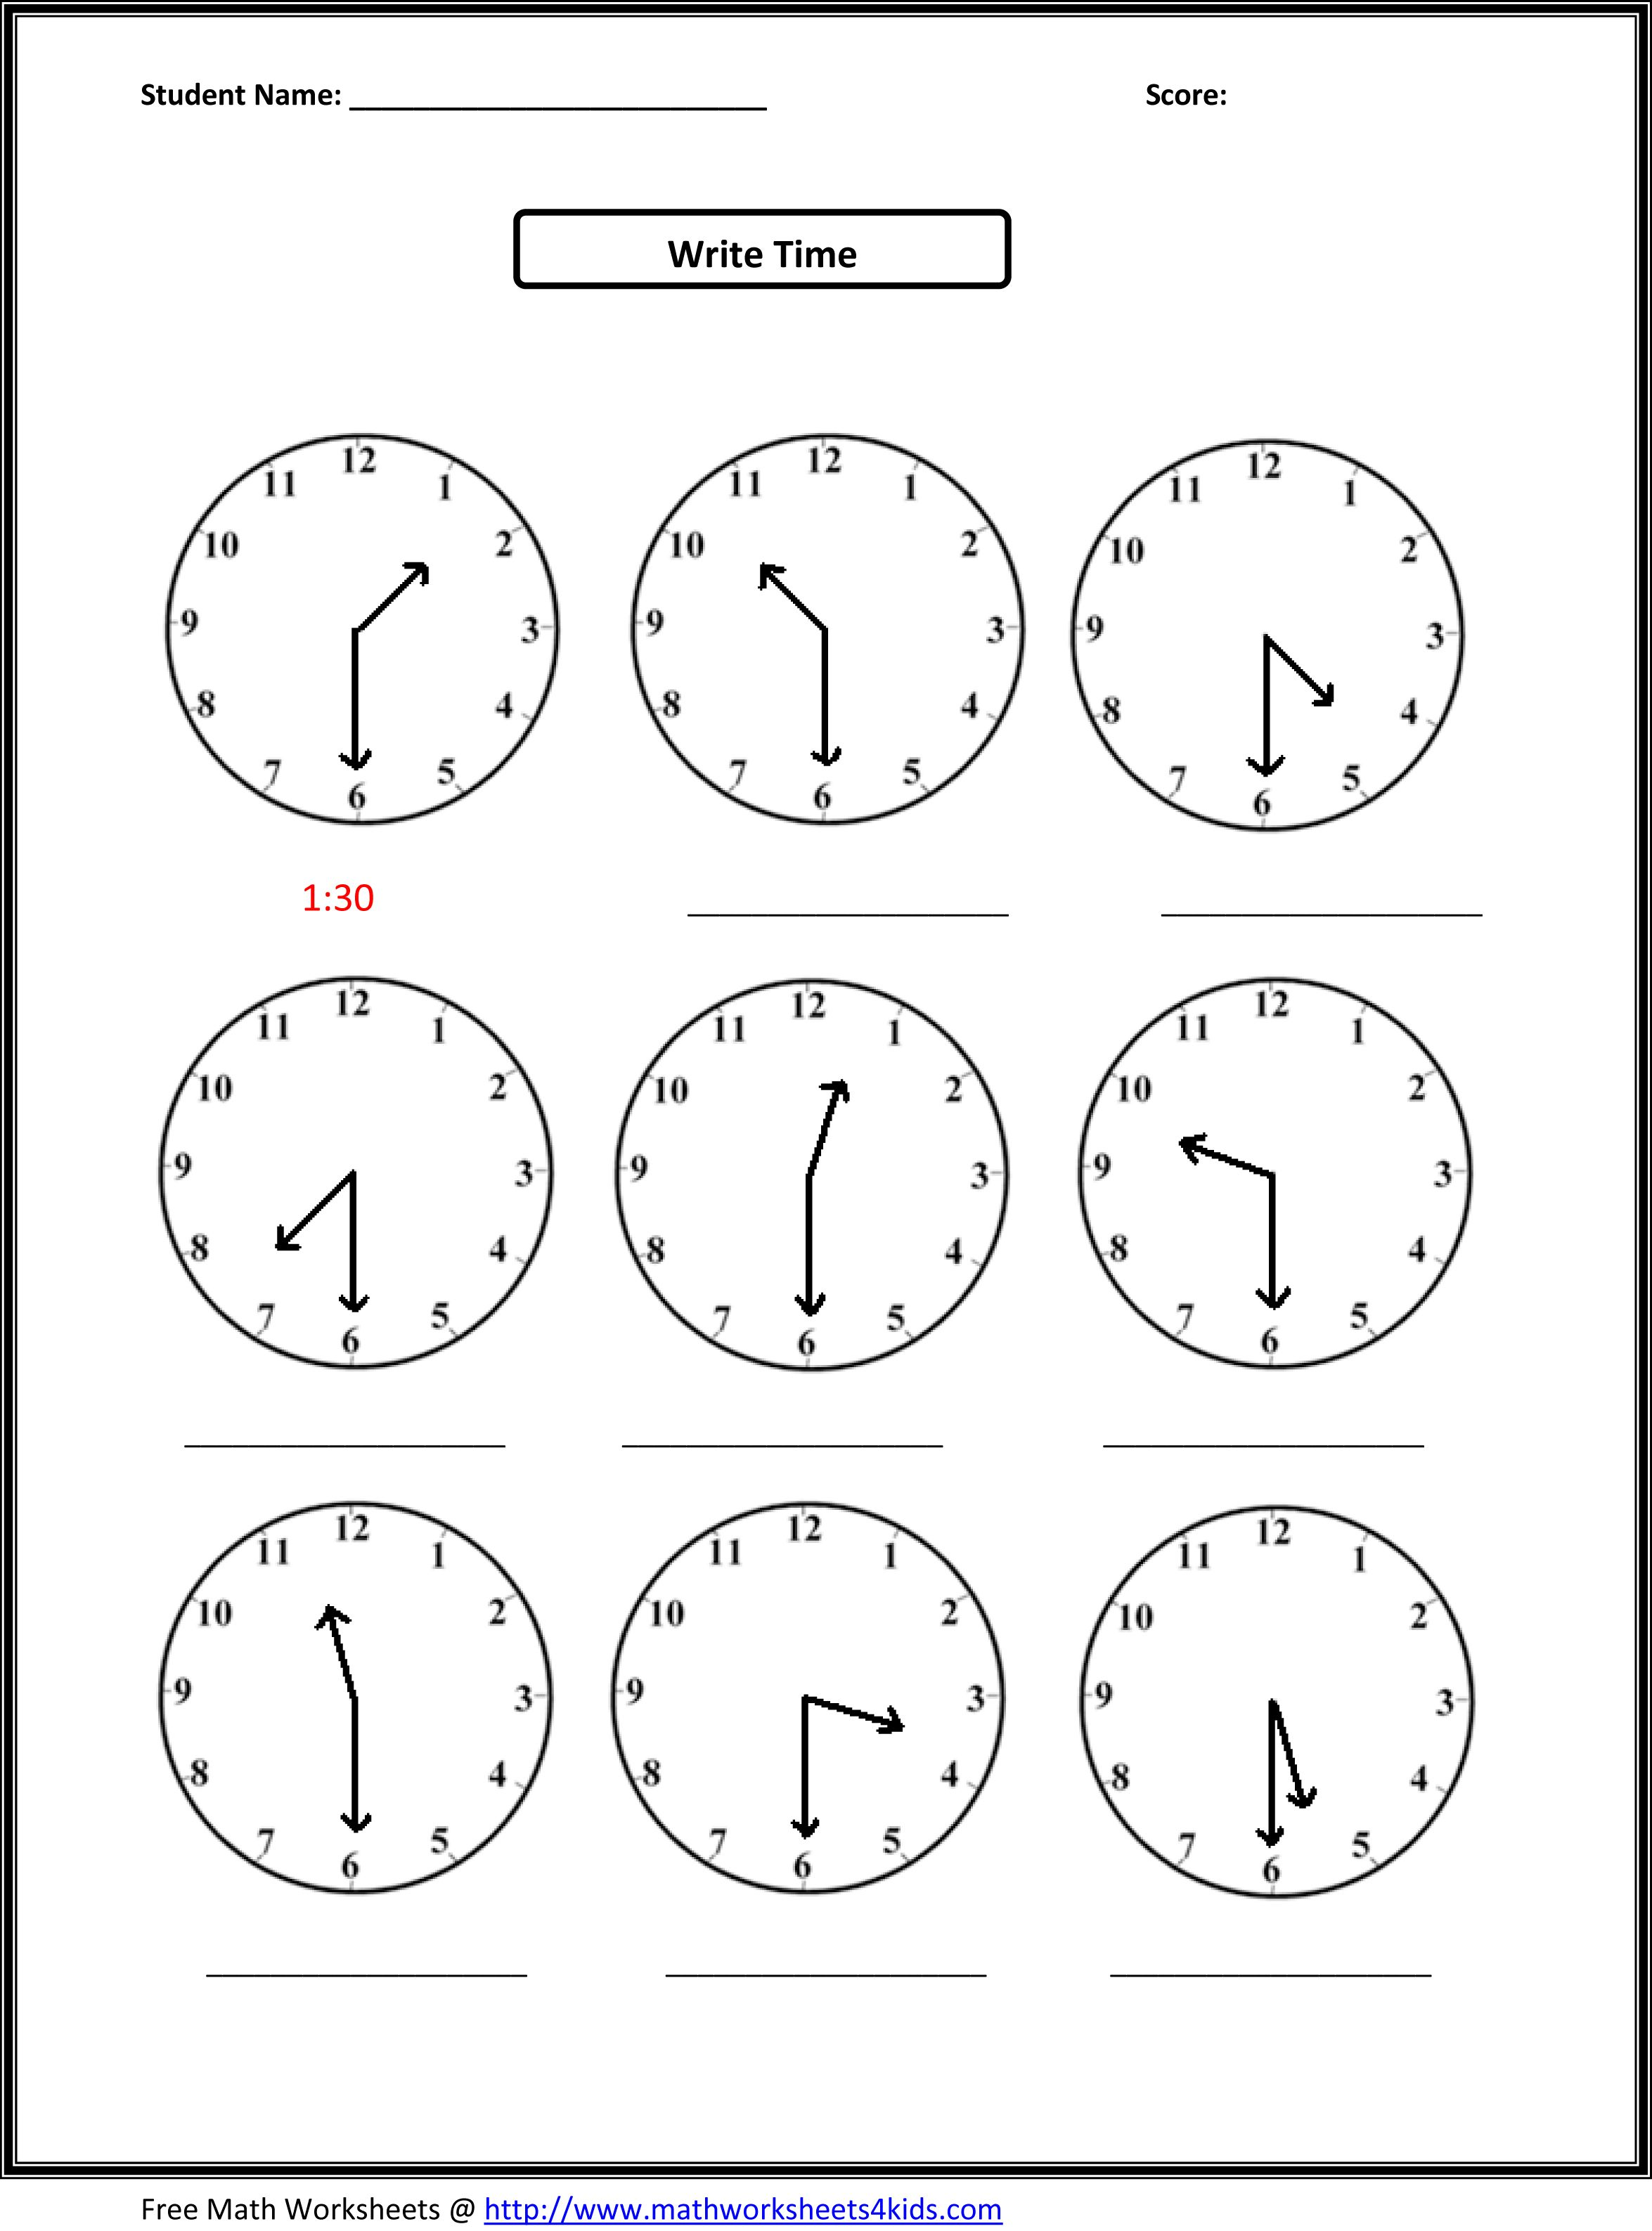 Weirdmailus  Pleasant Worksheet On Time For Grade   Reocurent With Exciting Free Printable Telling Time Worksheets Nd Grade  Reocurent With Nice Science Energy Worksheets Also Compare Excel Worksheets  In Addition Punctuation Worksheets For Nd Grade And Solving Equations With Two Variables Worksheets As Well As Math In English Worksheets Additionally Union And Intersection Worksheets From Reocurentcom With Weirdmailus  Exciting Worksheet On Time For Grade   Reocurent With Nice Free Printable Telling Time Worksheets Nd Grade  Reocurent And Pleasant Science Energy Worksheets Also Compare Excel Worksheets  In Addition Punctuation Worksheets For Nd Grade From Reocurentcom